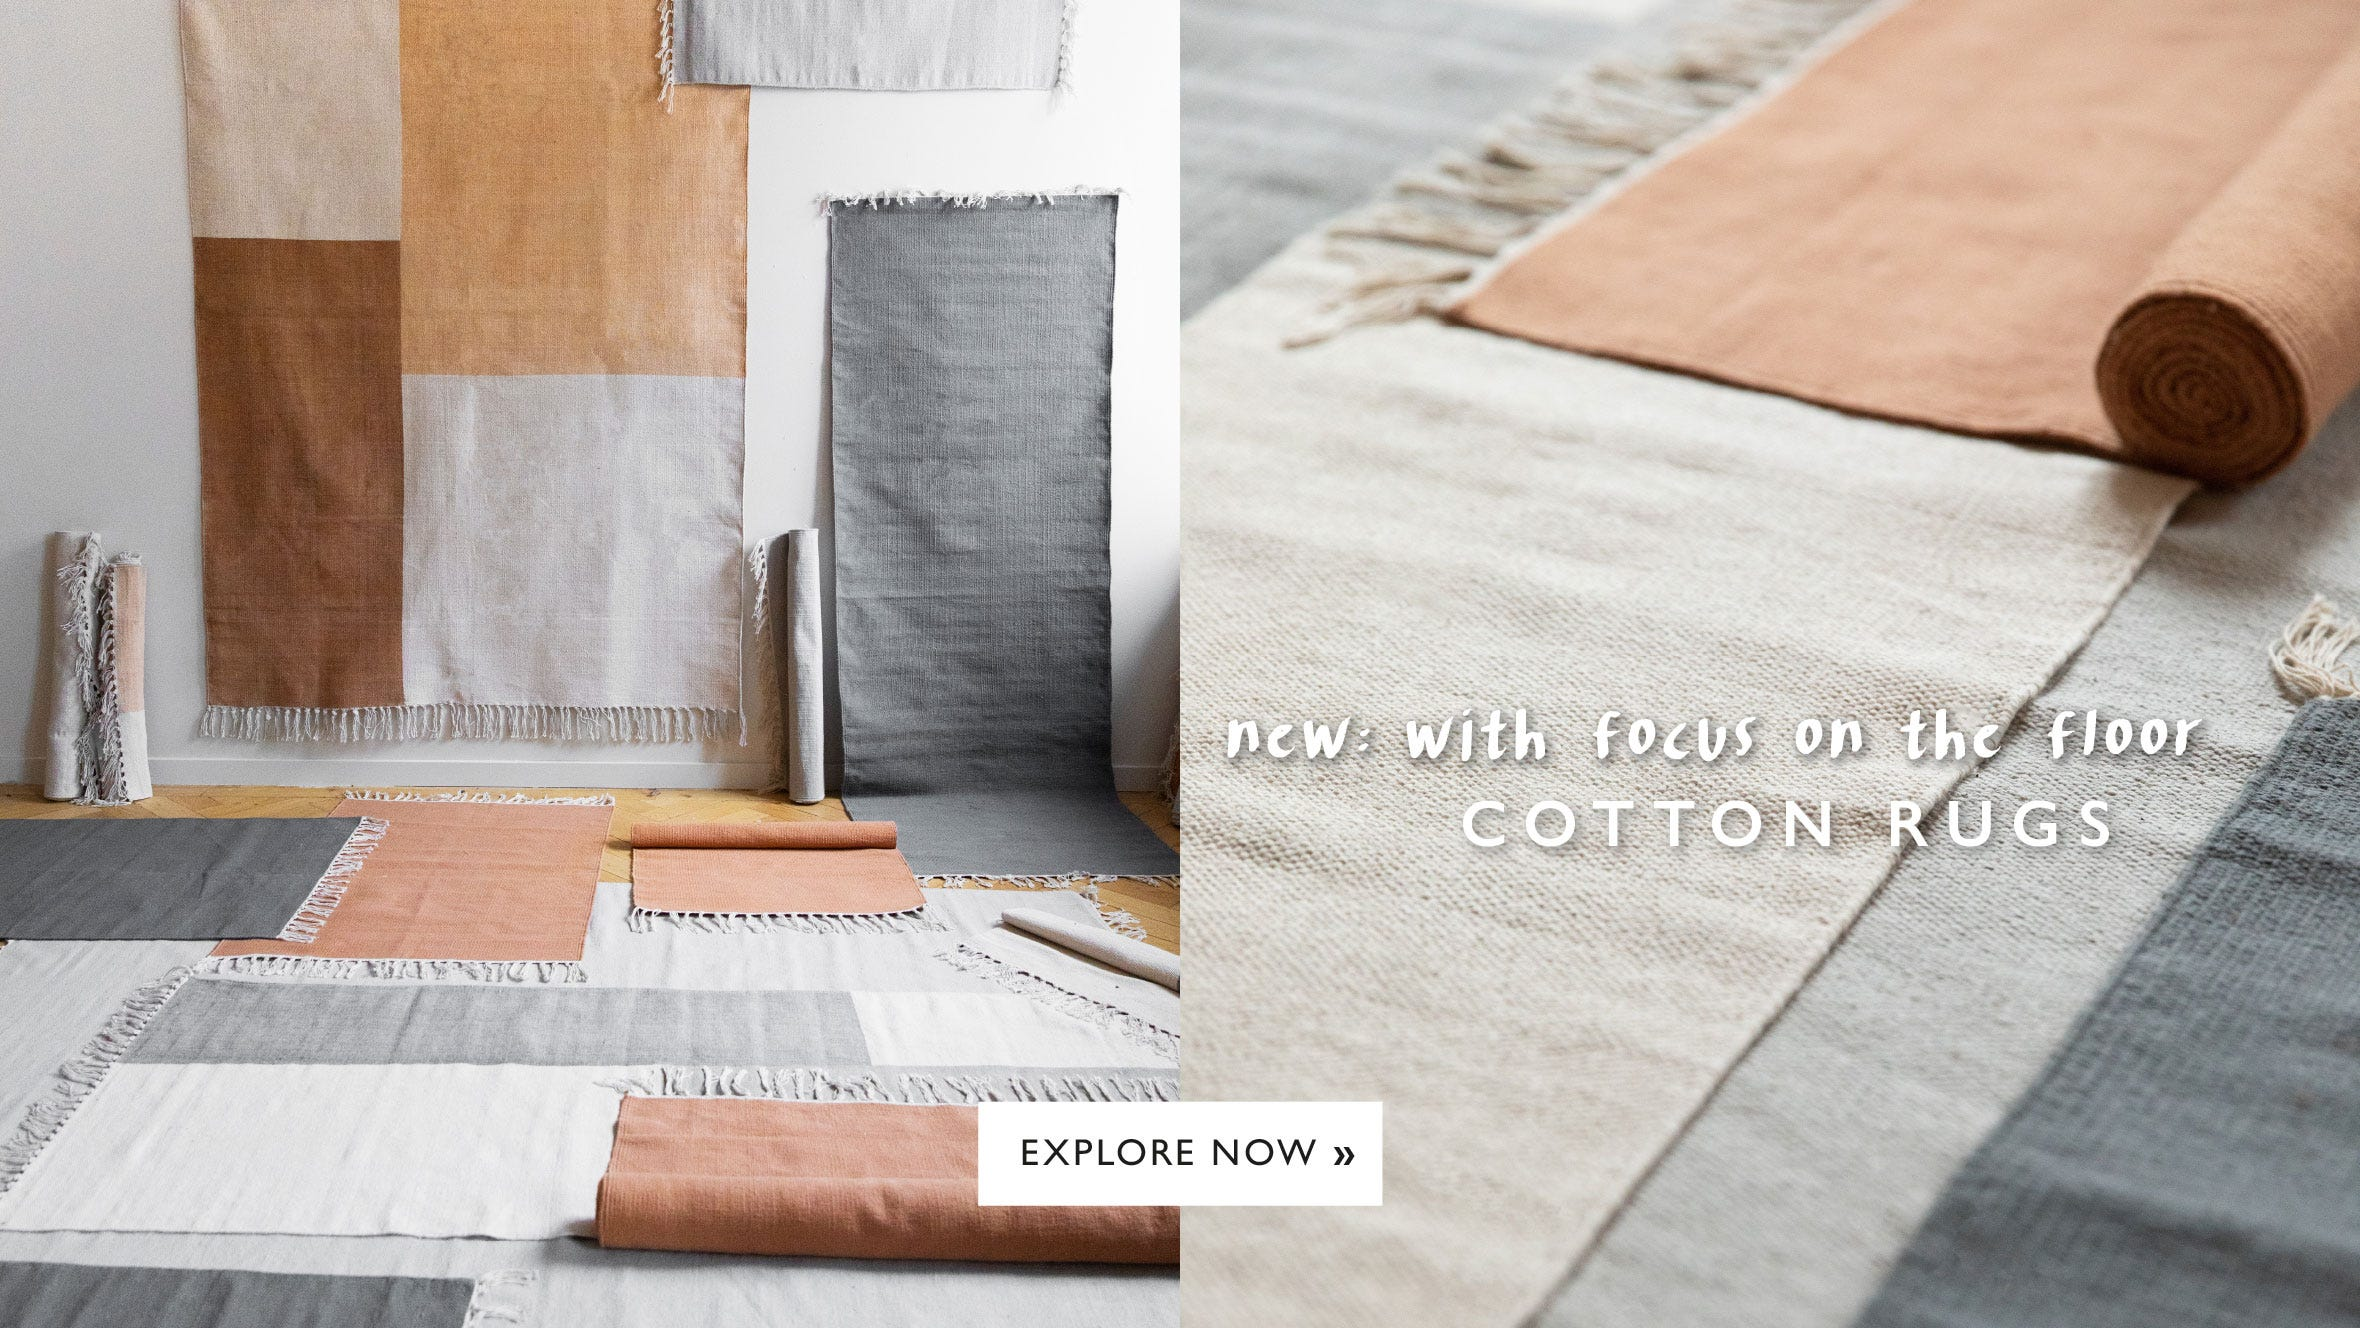 Rugs cottons